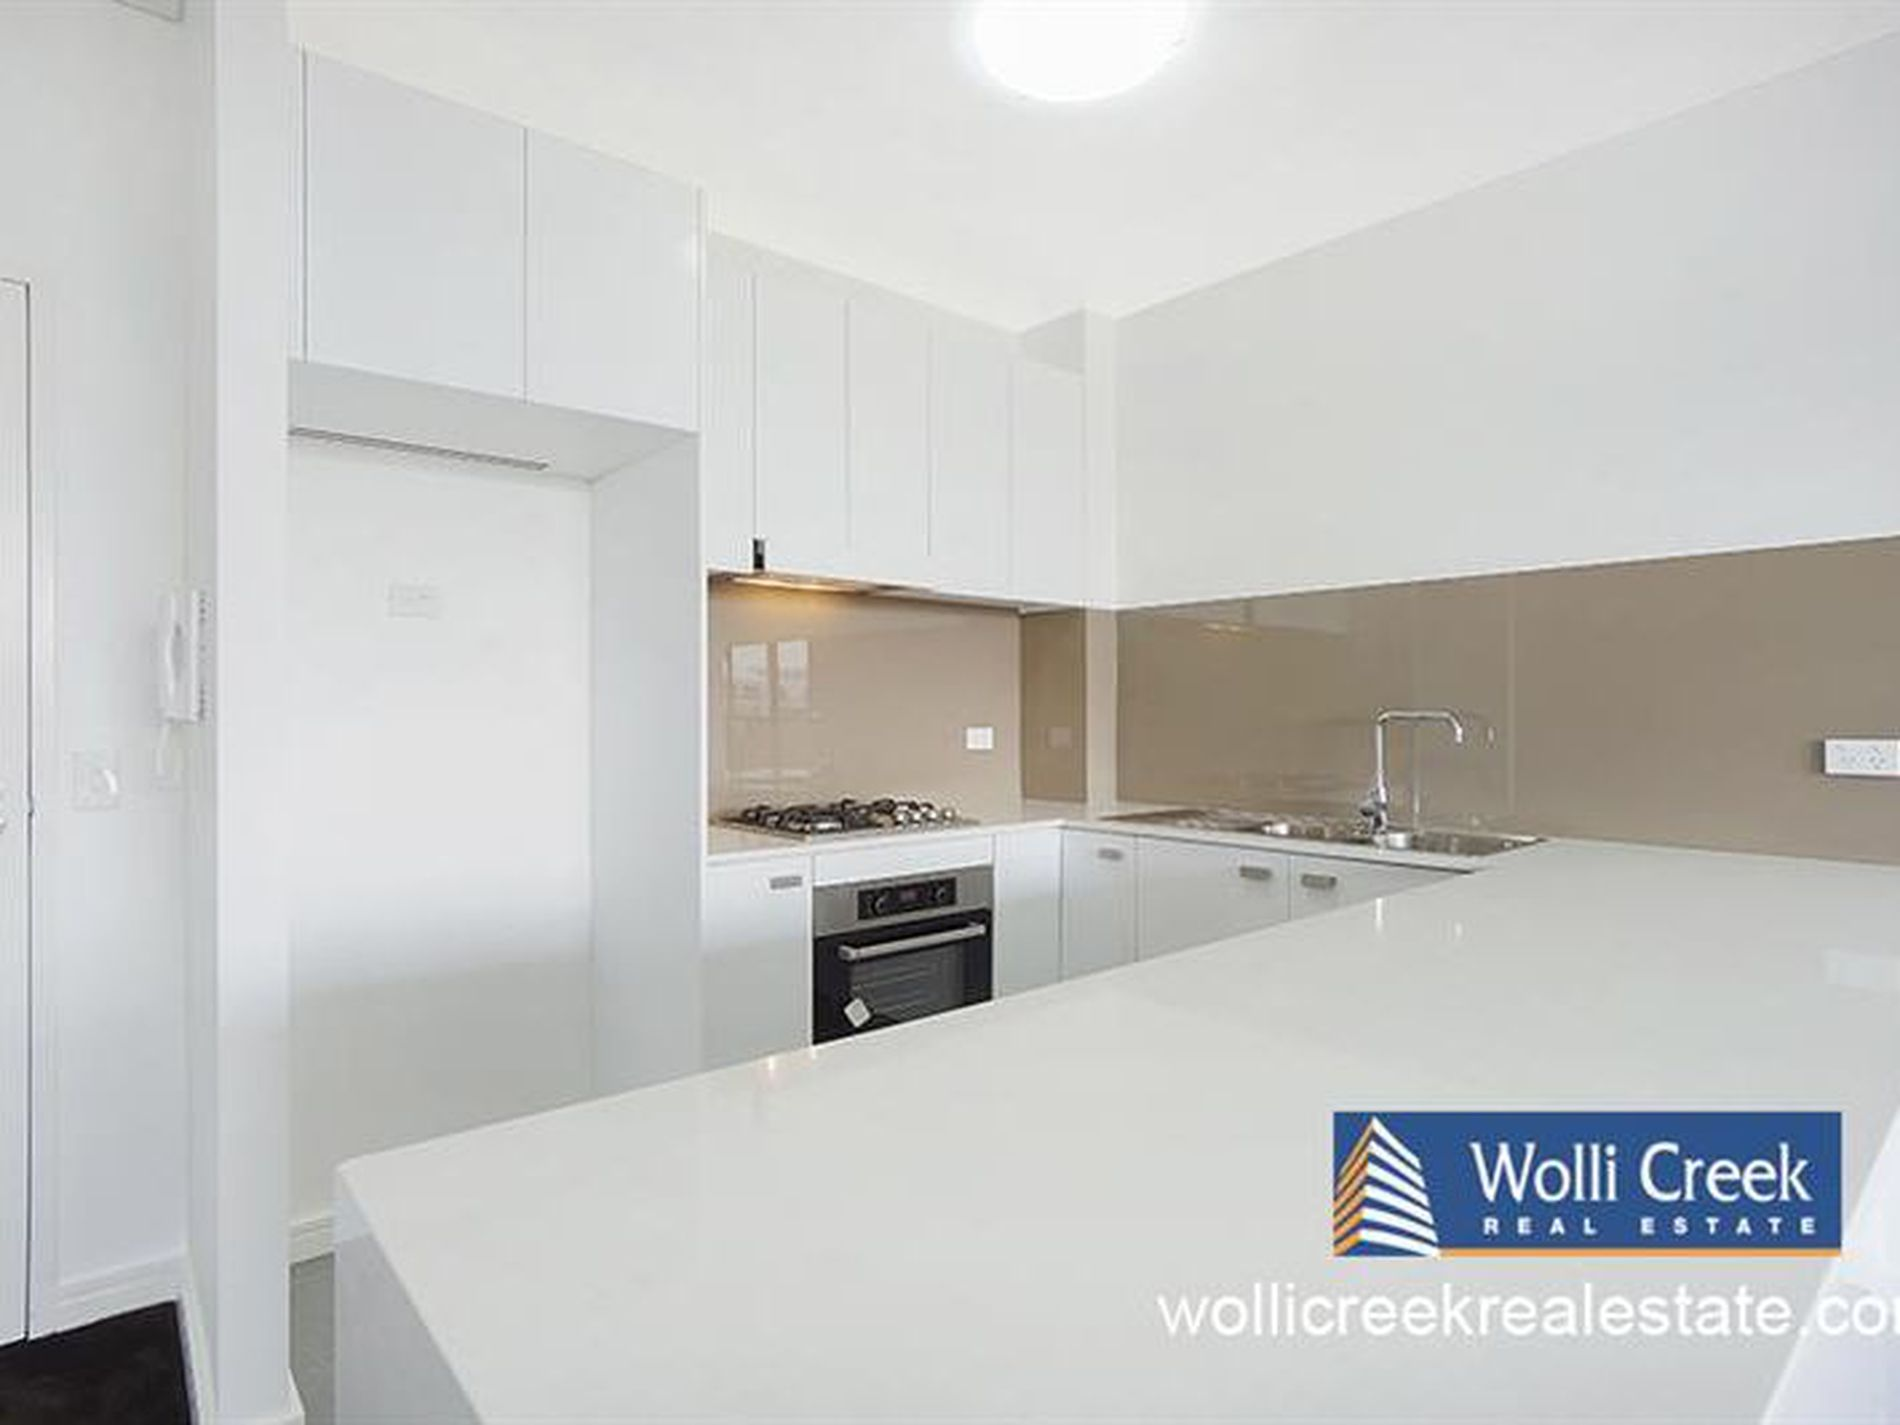 1-5 Gertrude Street, Wolli Creek